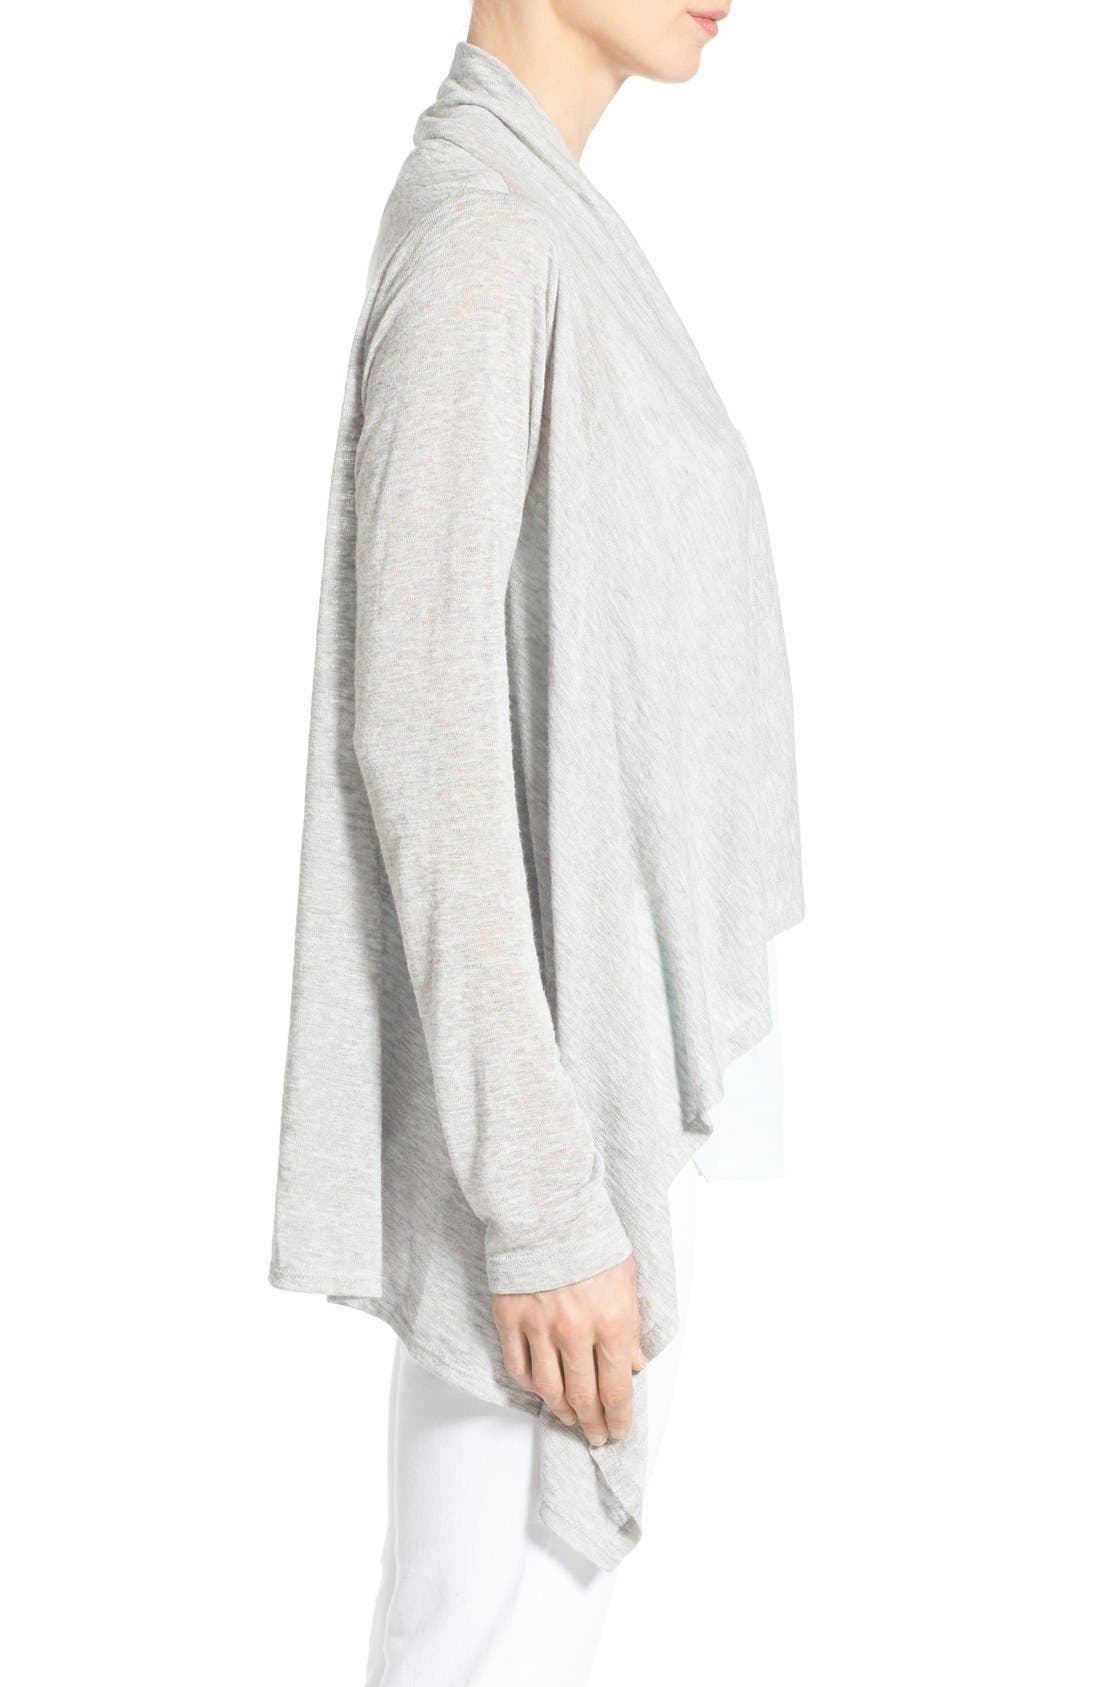 Alternate Image 3  - Bobeau Lightweight One-Button Asymmetrical Cardigan (Regular & Petite)